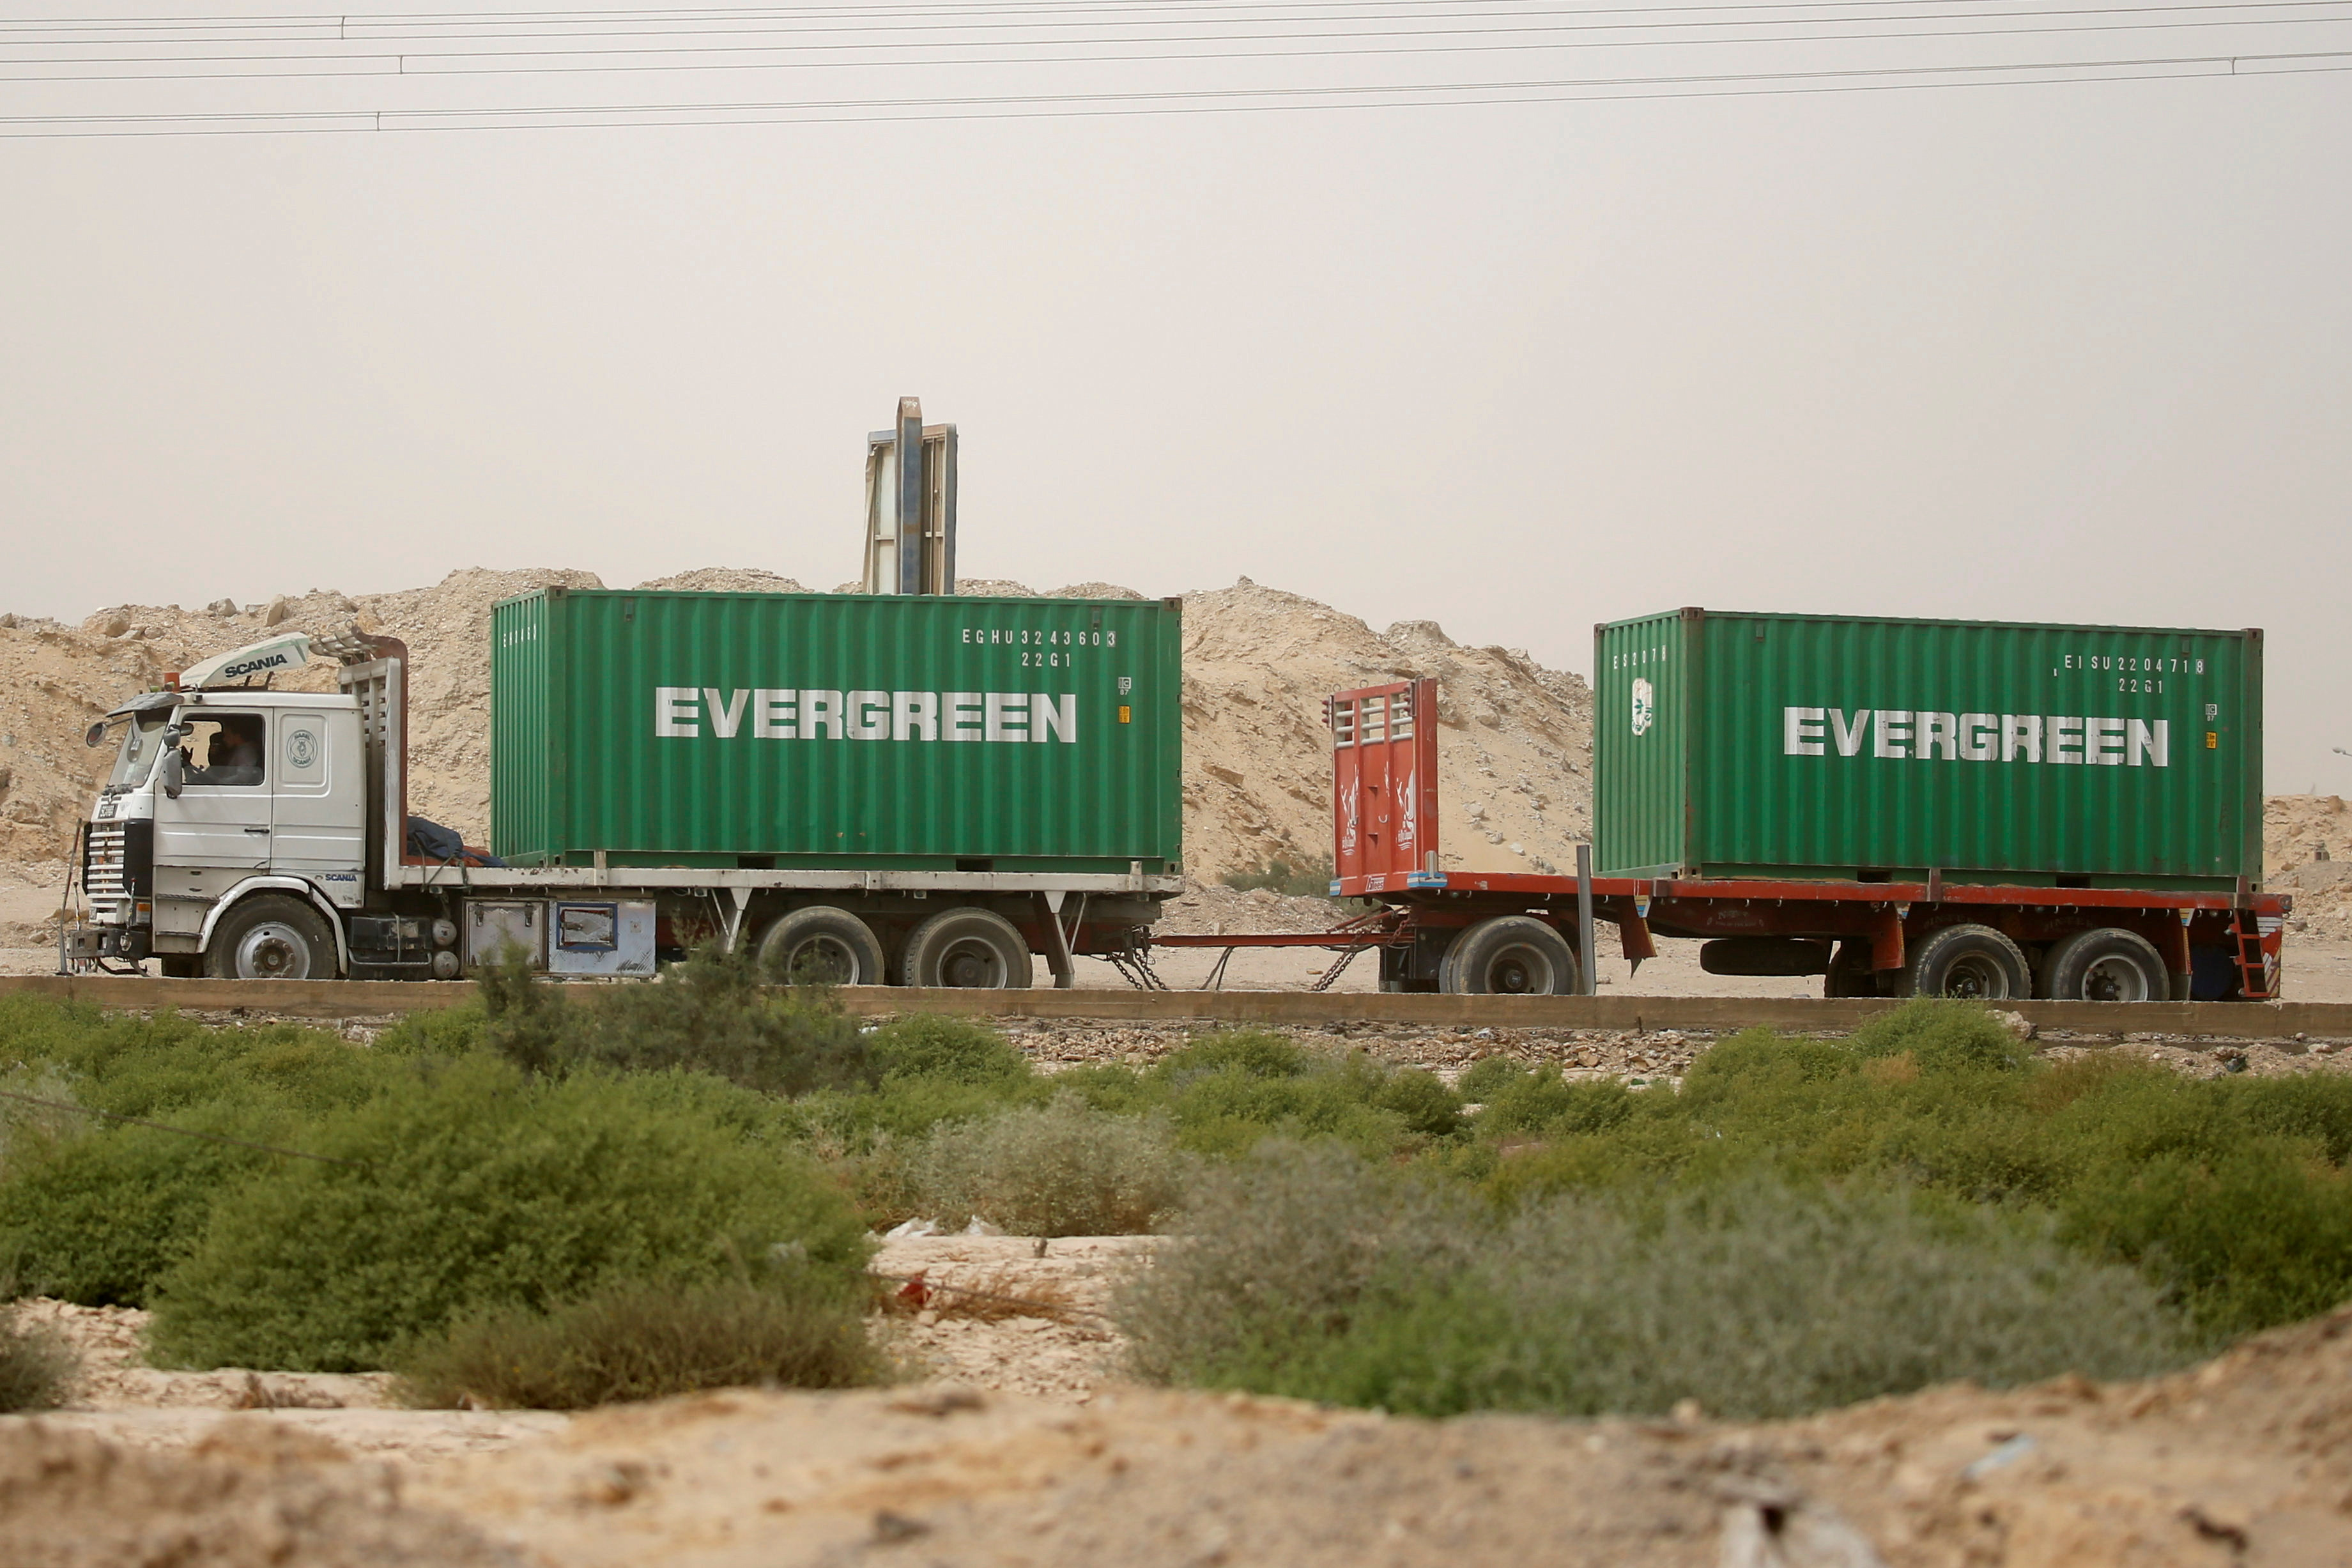 A truck carrying Evergreen containers, waits to pass through the main gate of the El Ain El Sokhna port to Suez Canal, Egypt March 24, 2021. REUTERS/Amr Abdallah Dalsh